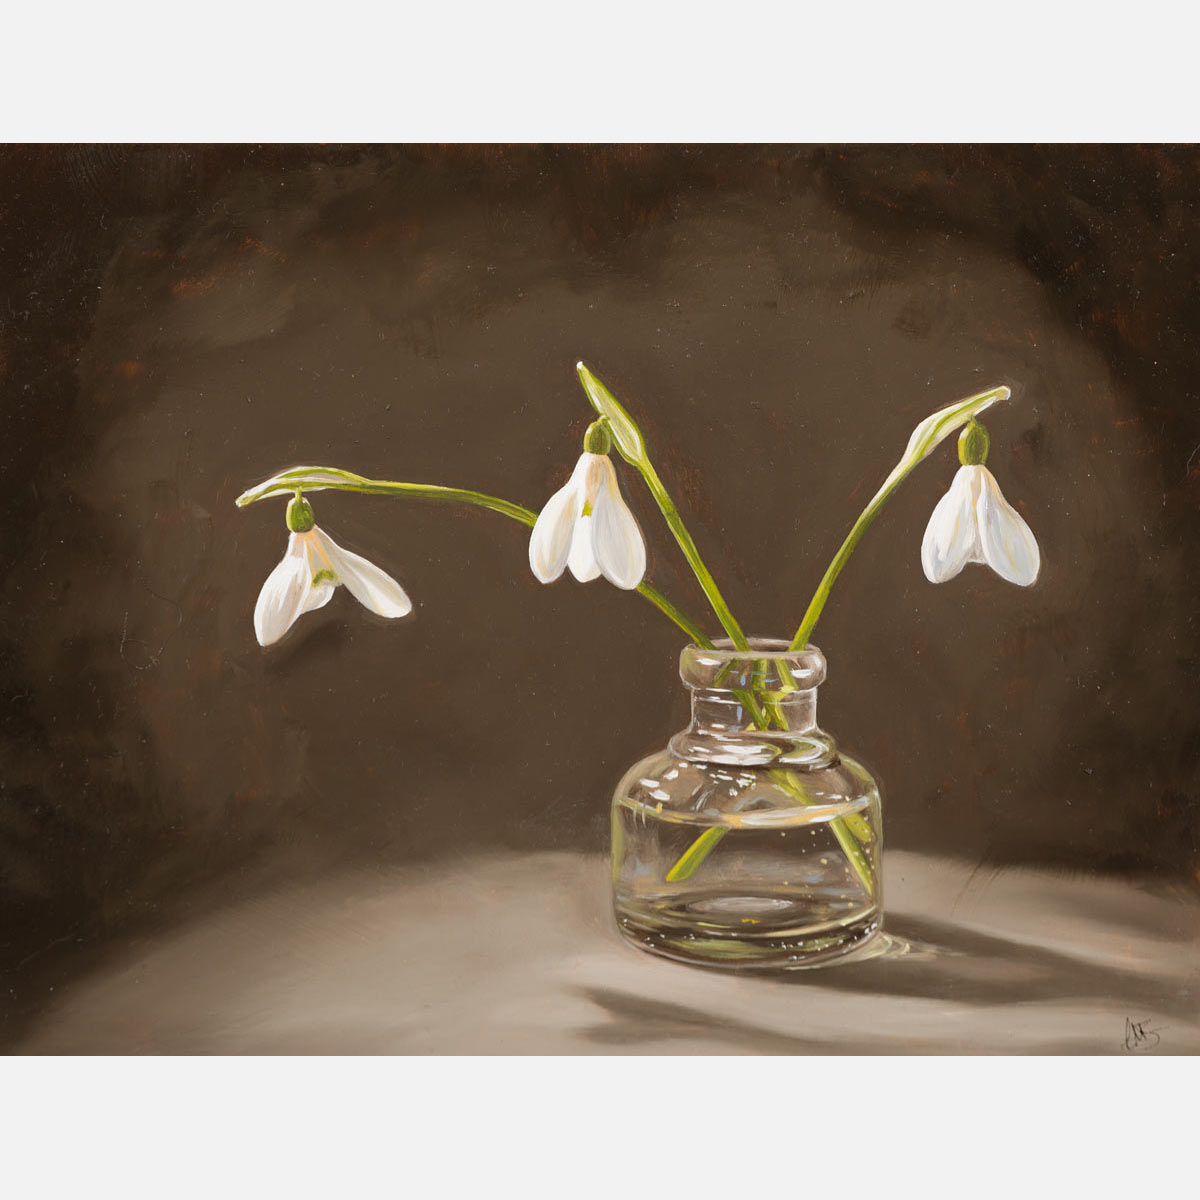 Patience - original oil painting of snowdrops in an antique inkwell